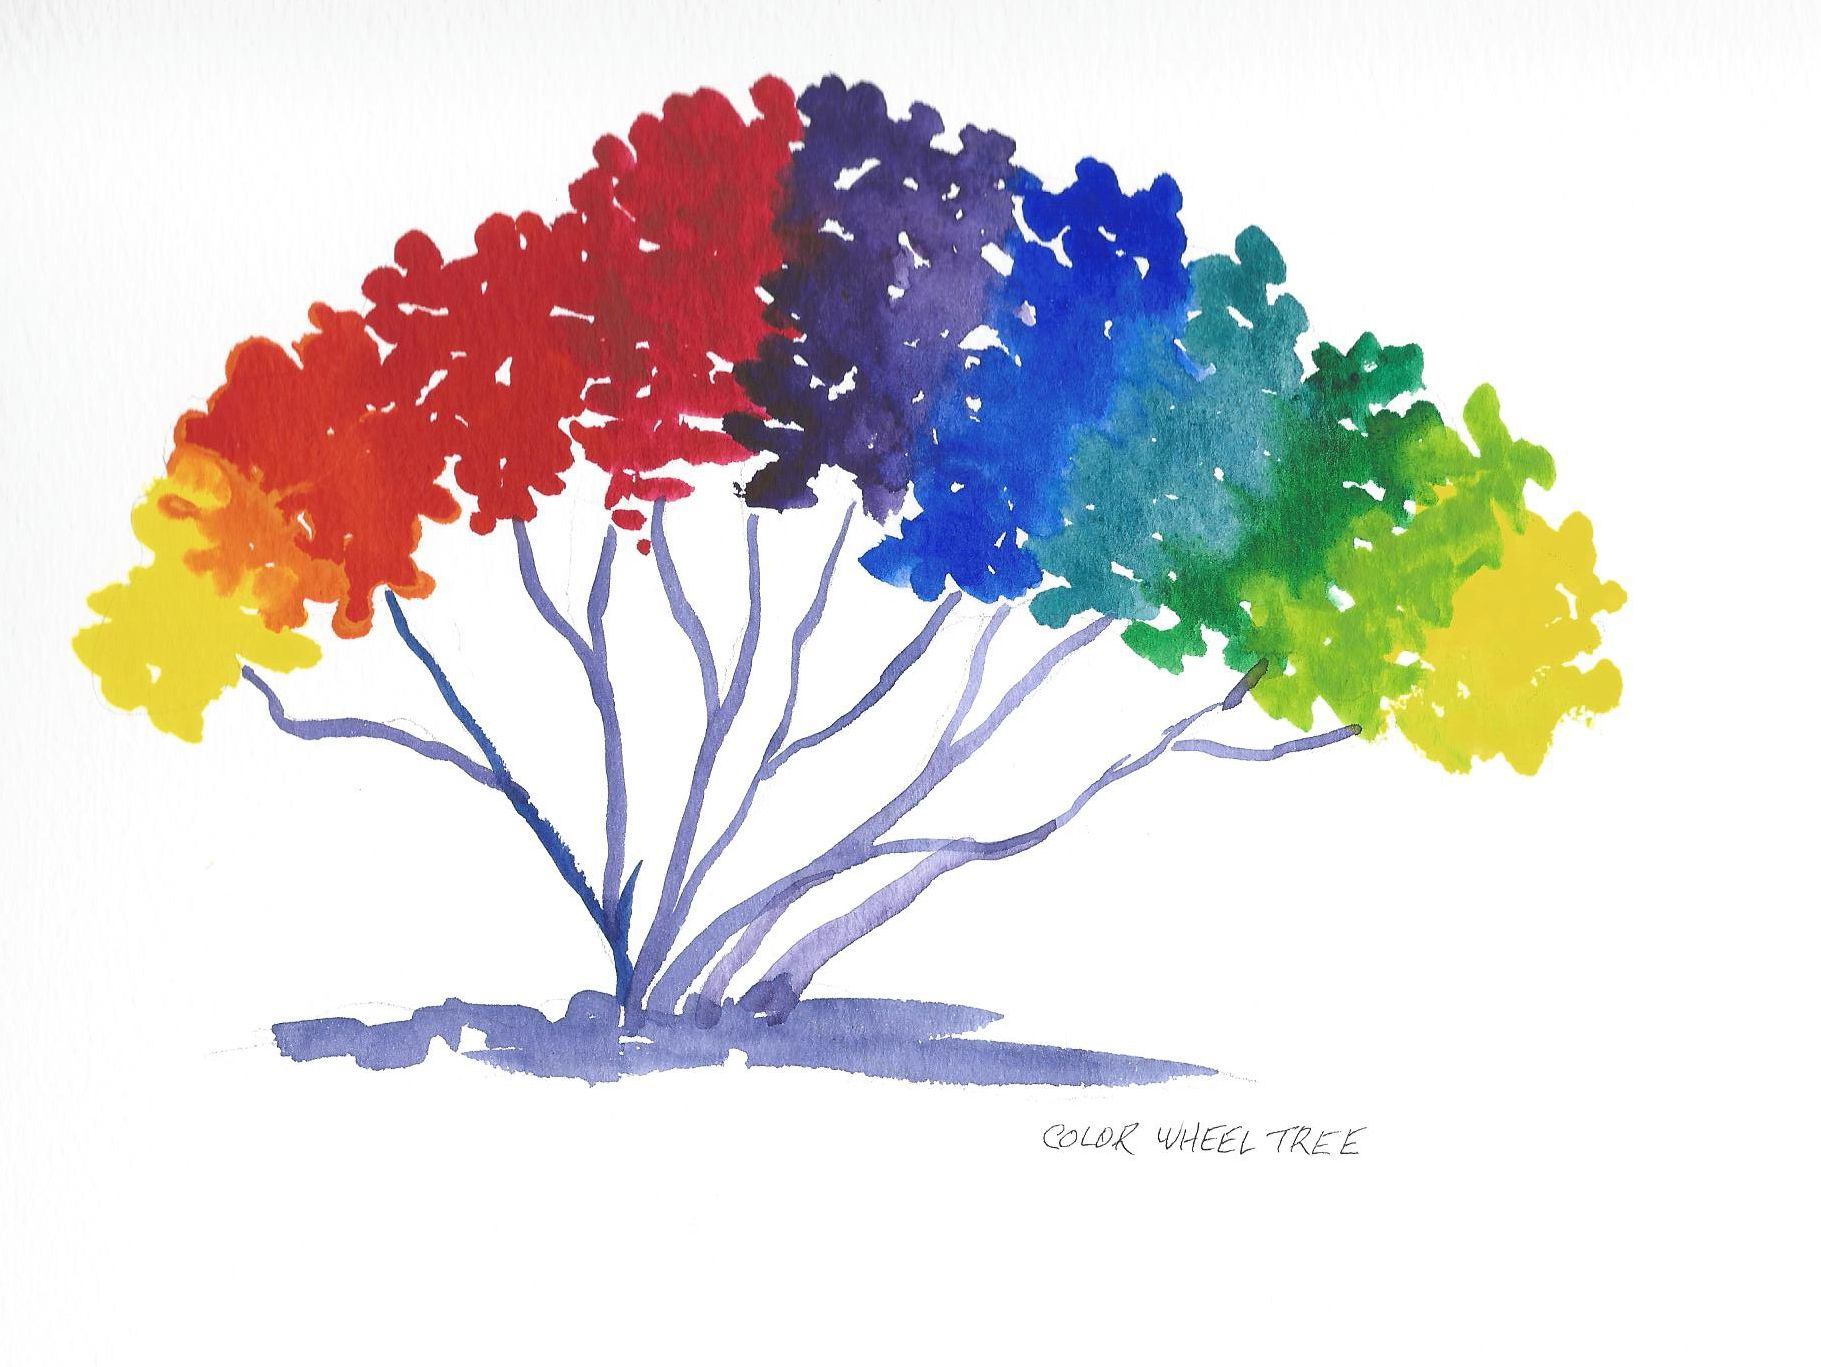 The Color Wheel Tree